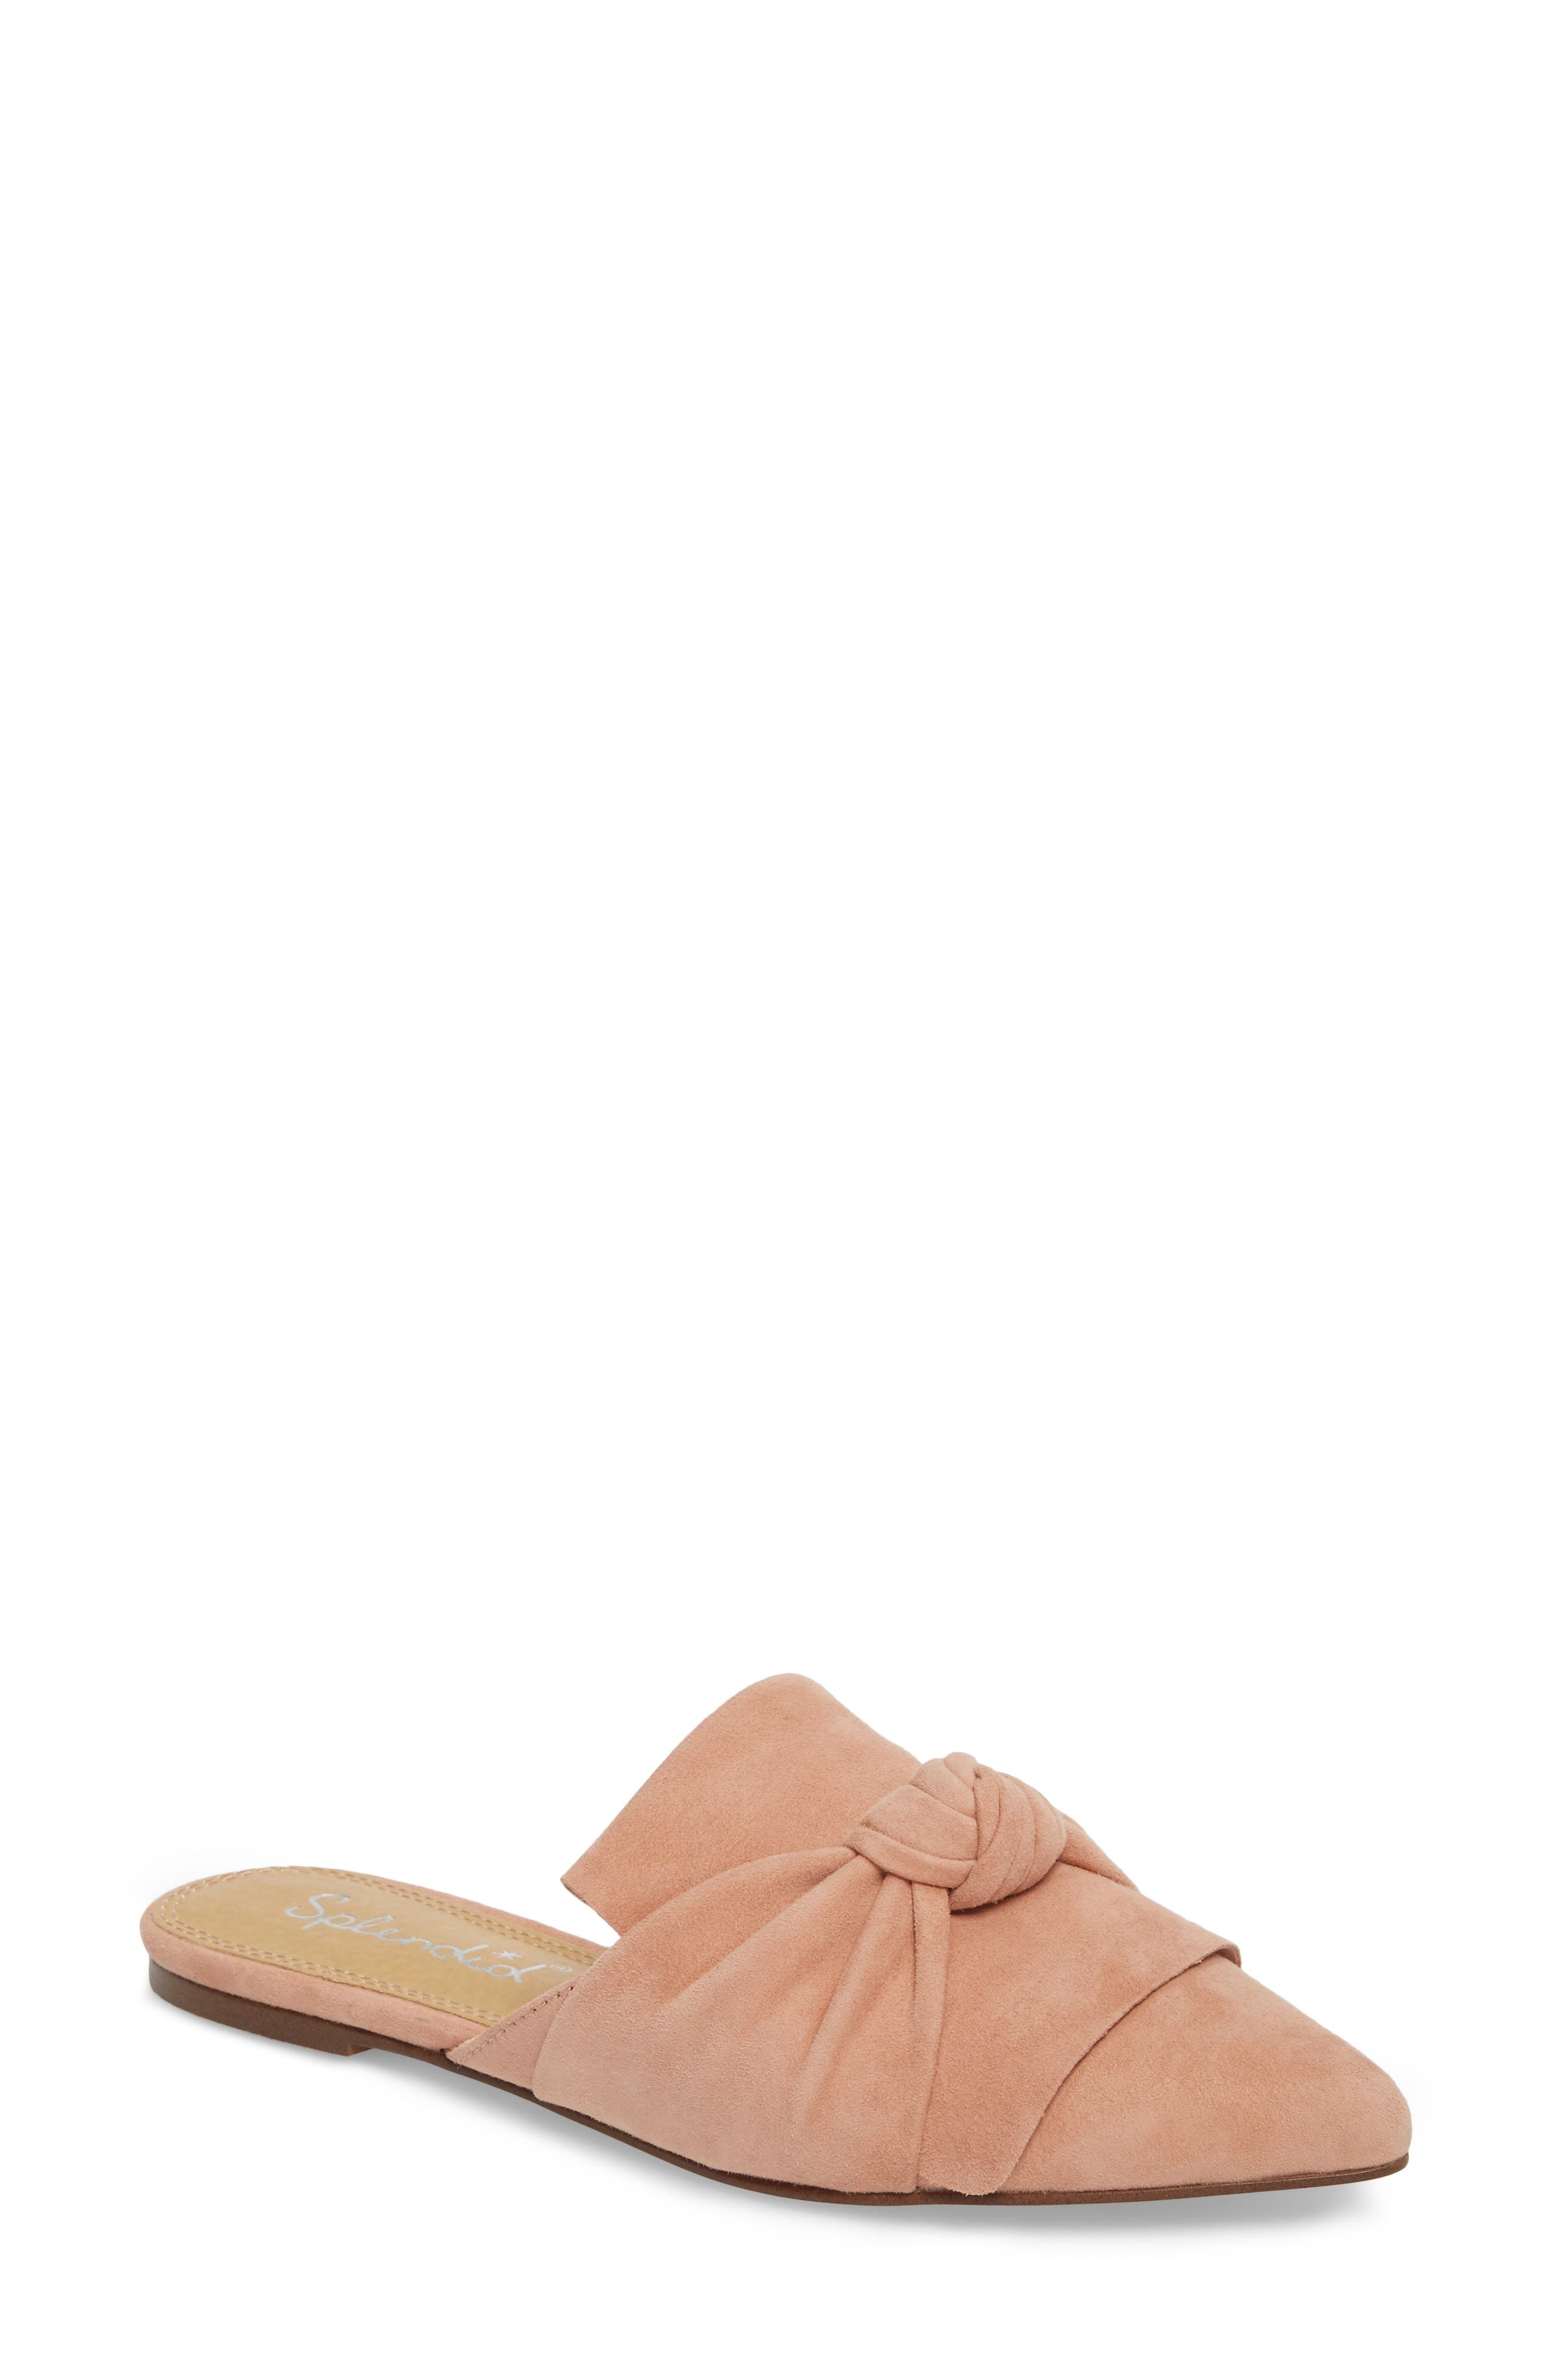 Bassett Knotted Pointy Toe Mule,                             Main thumbnail 3, color,